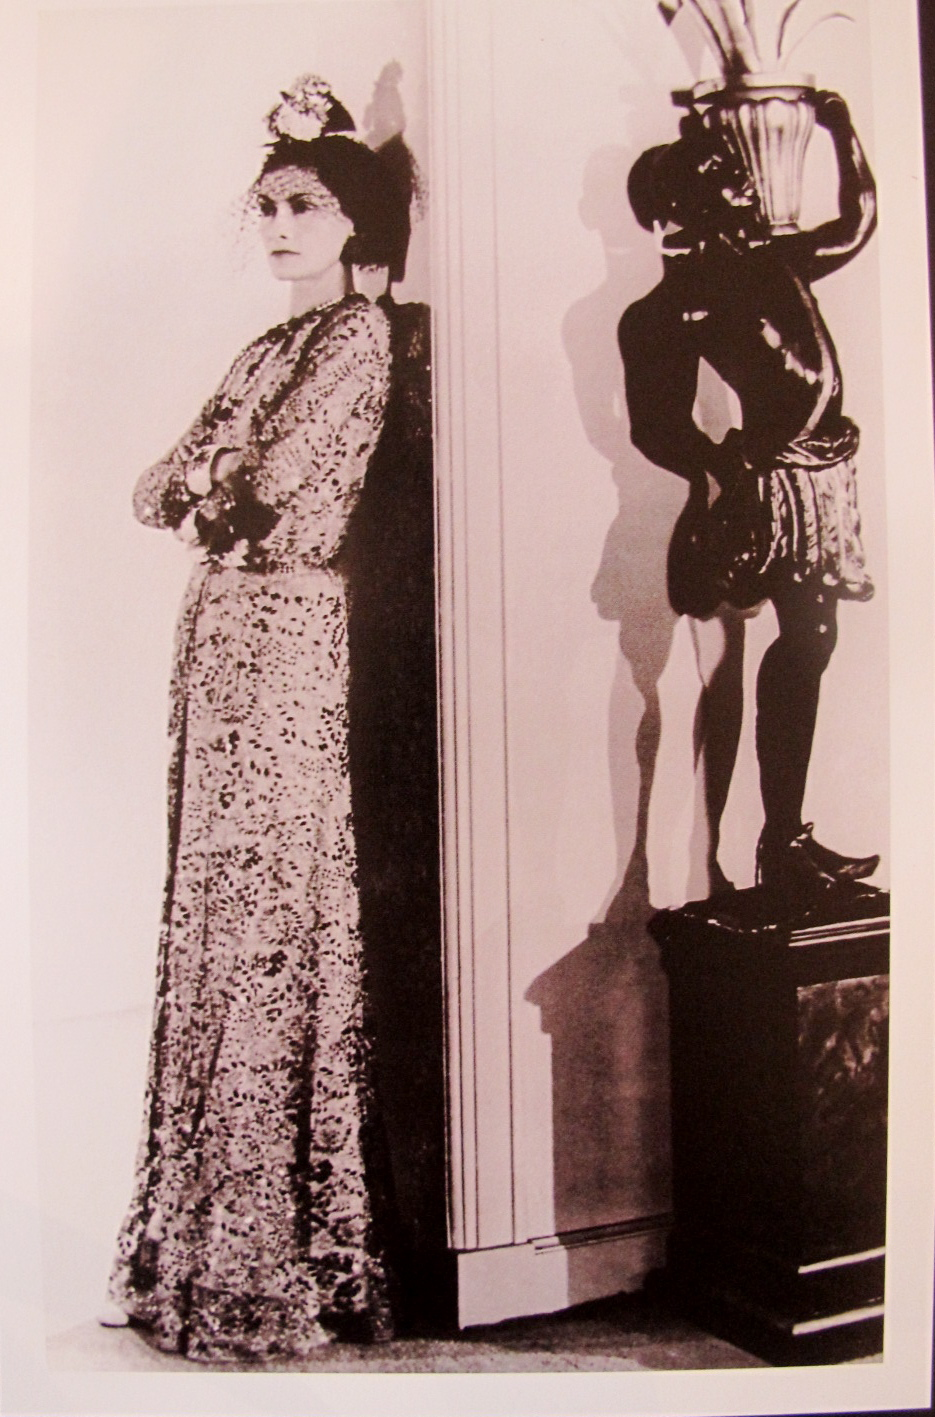 11936 camellias in her hair, baroque cuffs, glittering beside a Venetian statue of a Moor